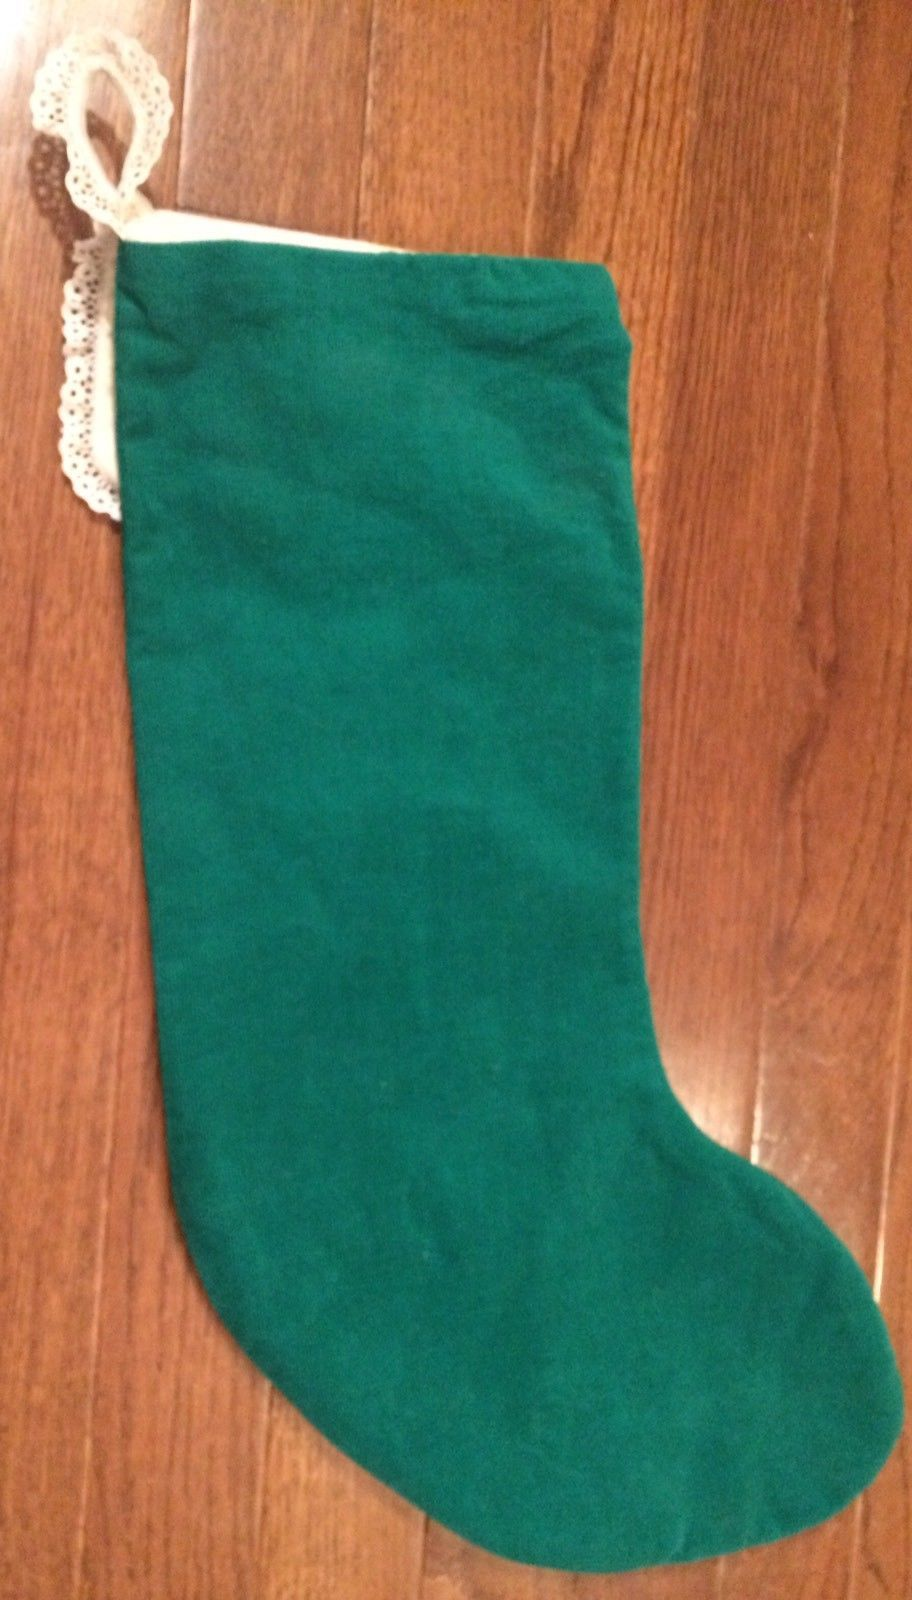 Vintage Christmas Stocking Crosstitch Green Personalized Kendall